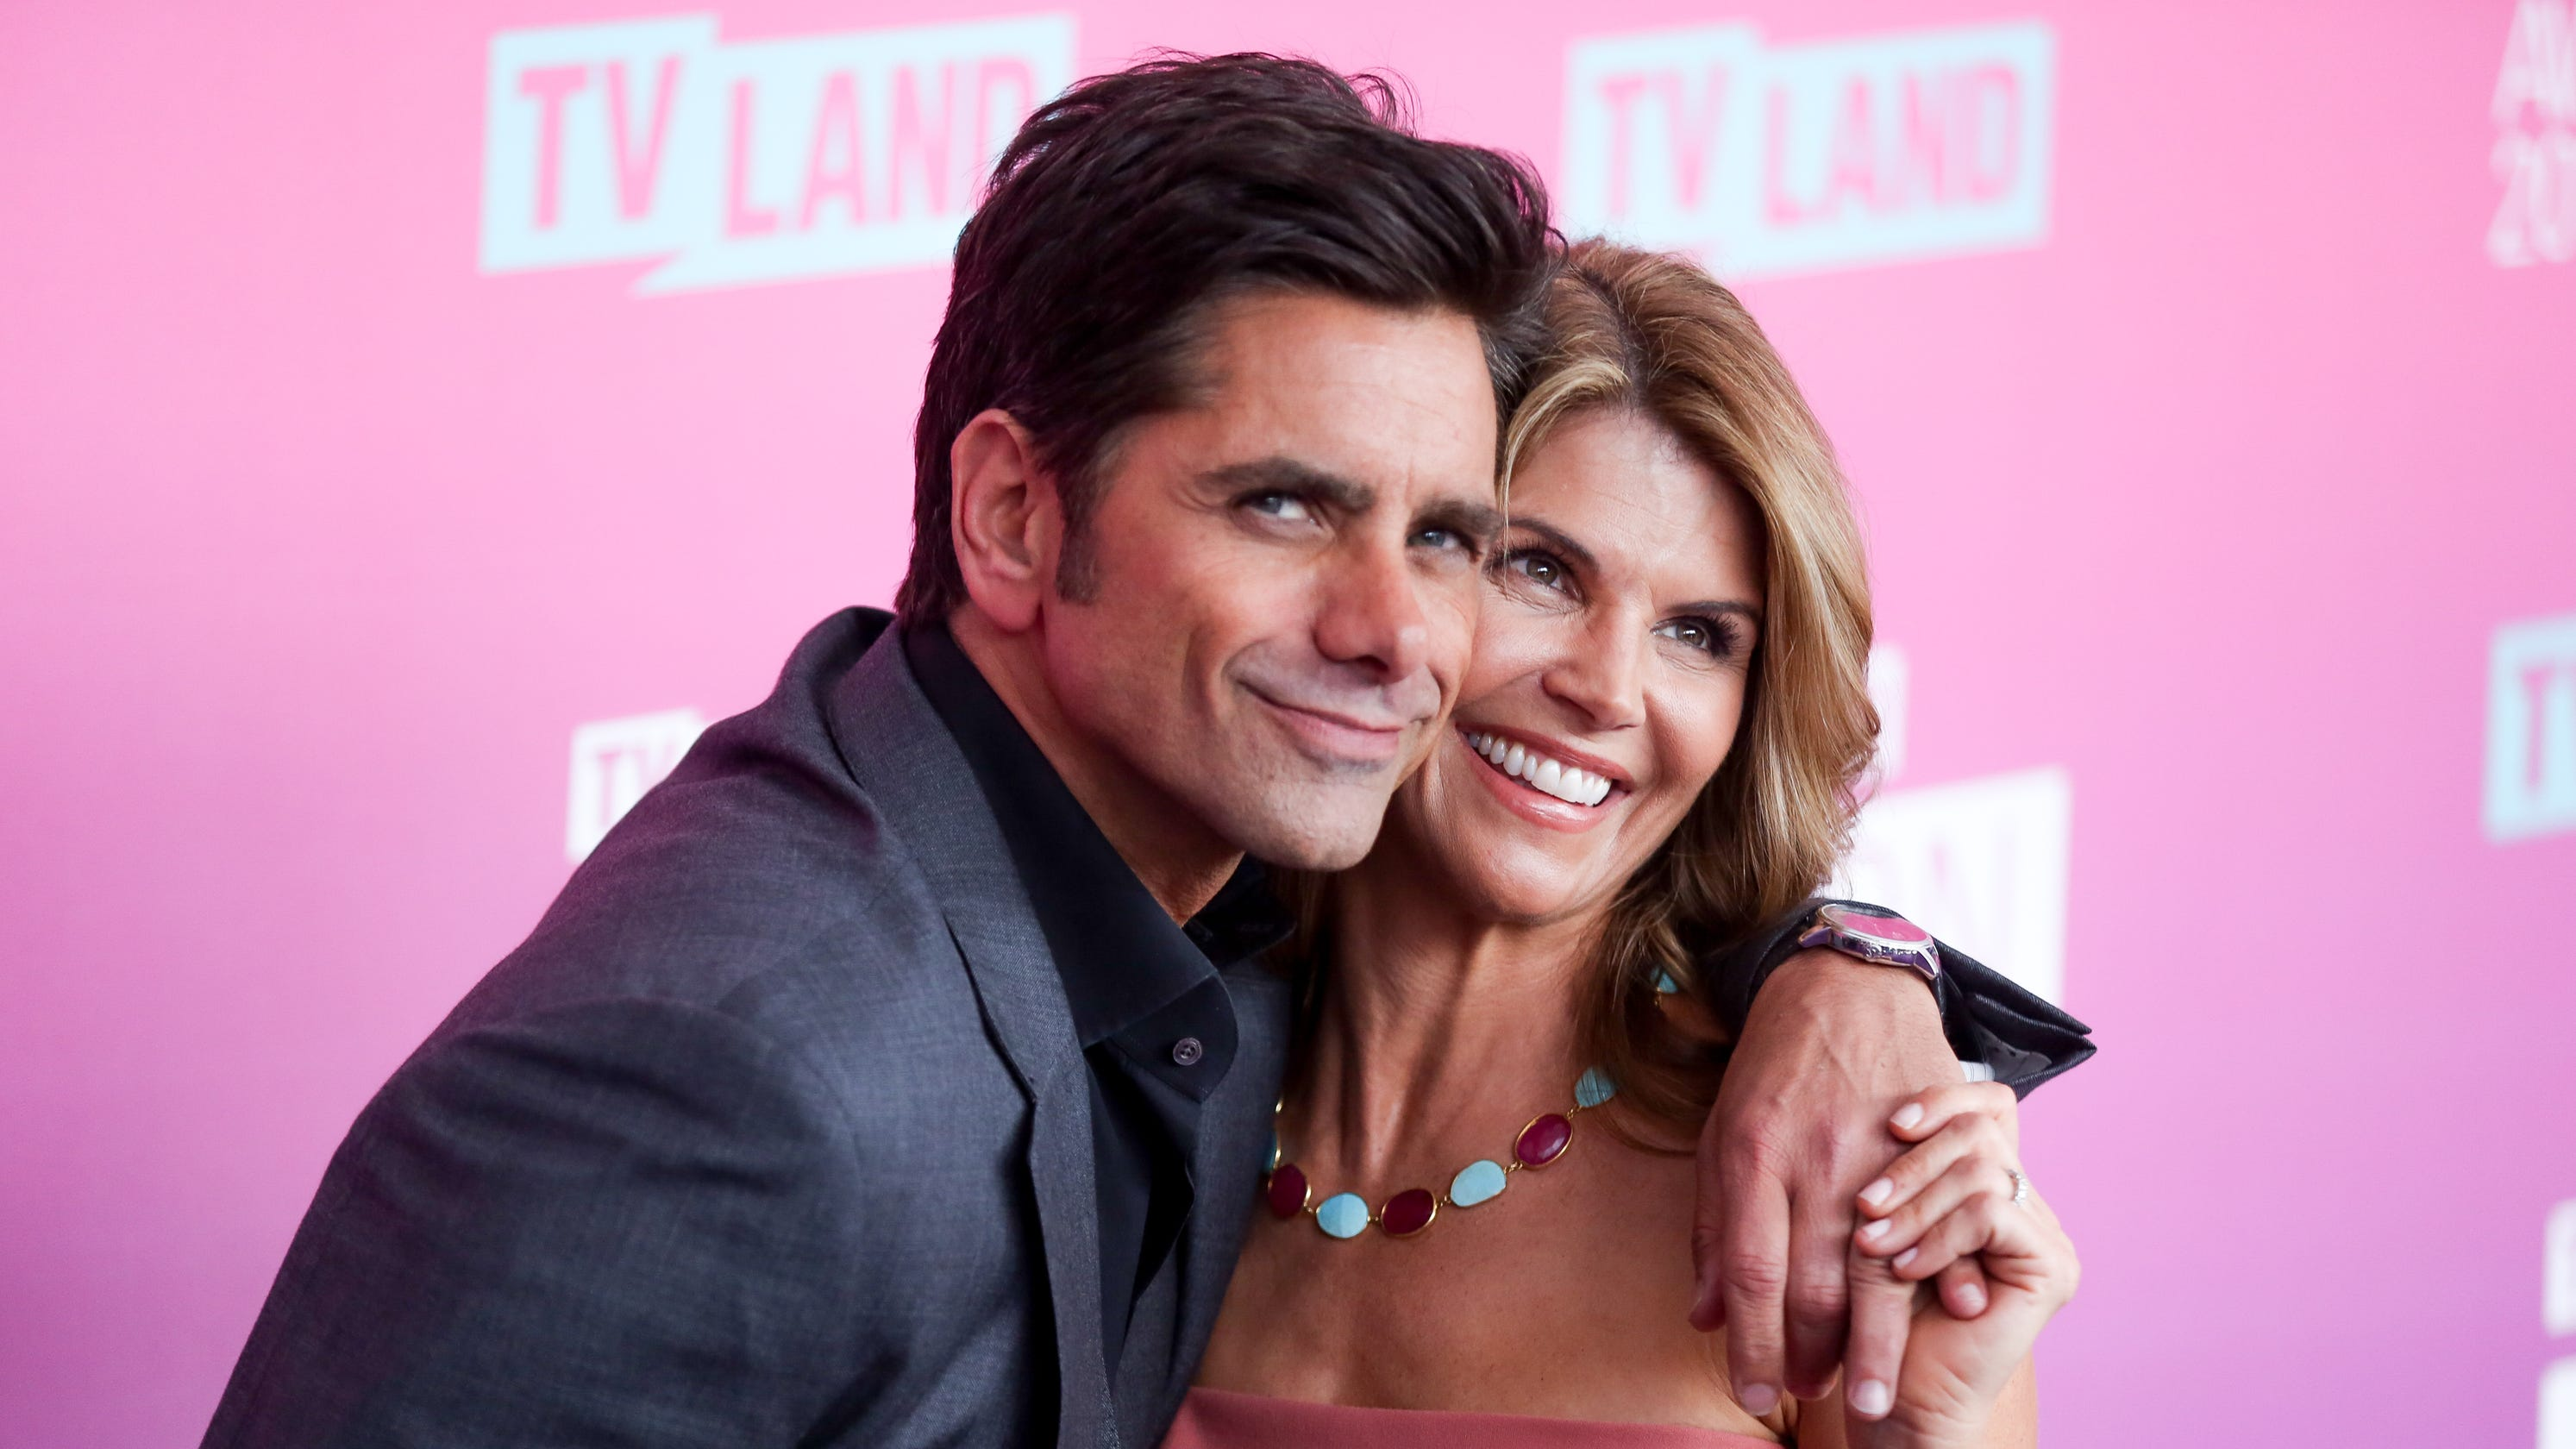 'I can't figure it out': John Stamos is still perplexed over Lori Loughlin scandal